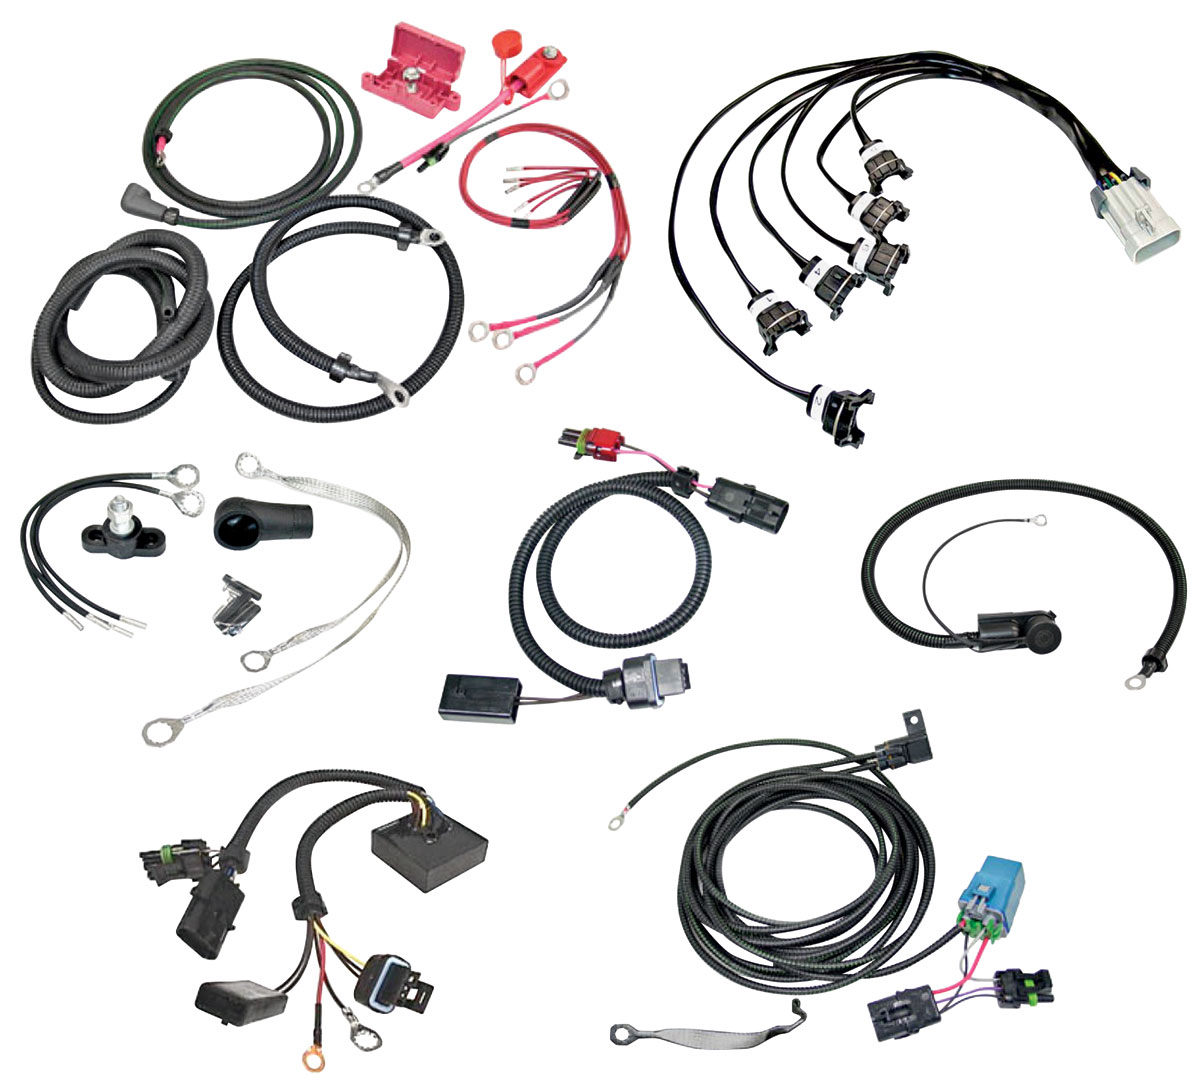 T-Type Harness, Wiring Upgrade Set Fits 1986-87 T-Type